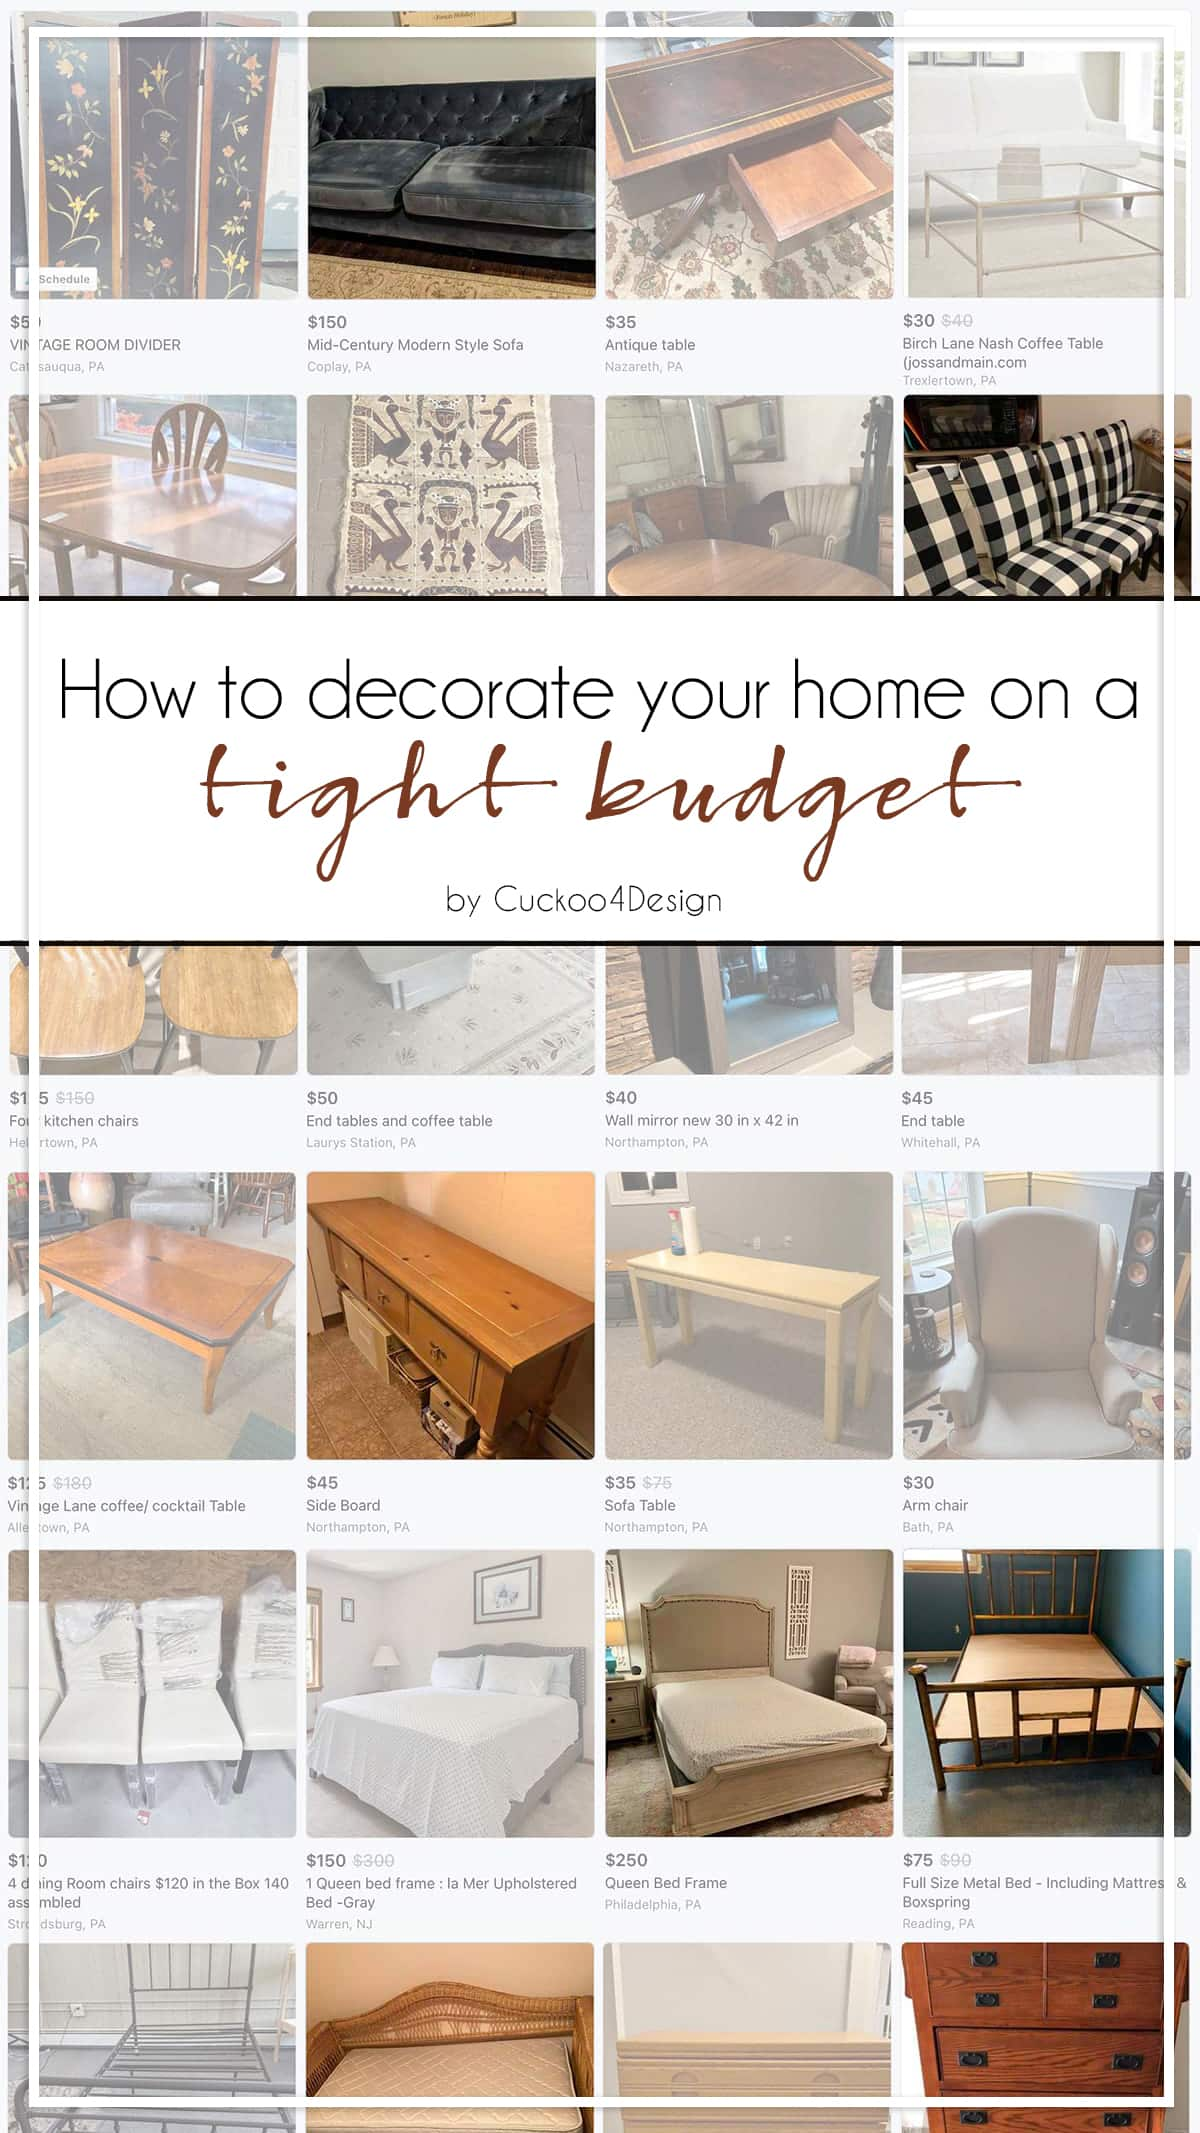 How to decorate your home on a tight budget